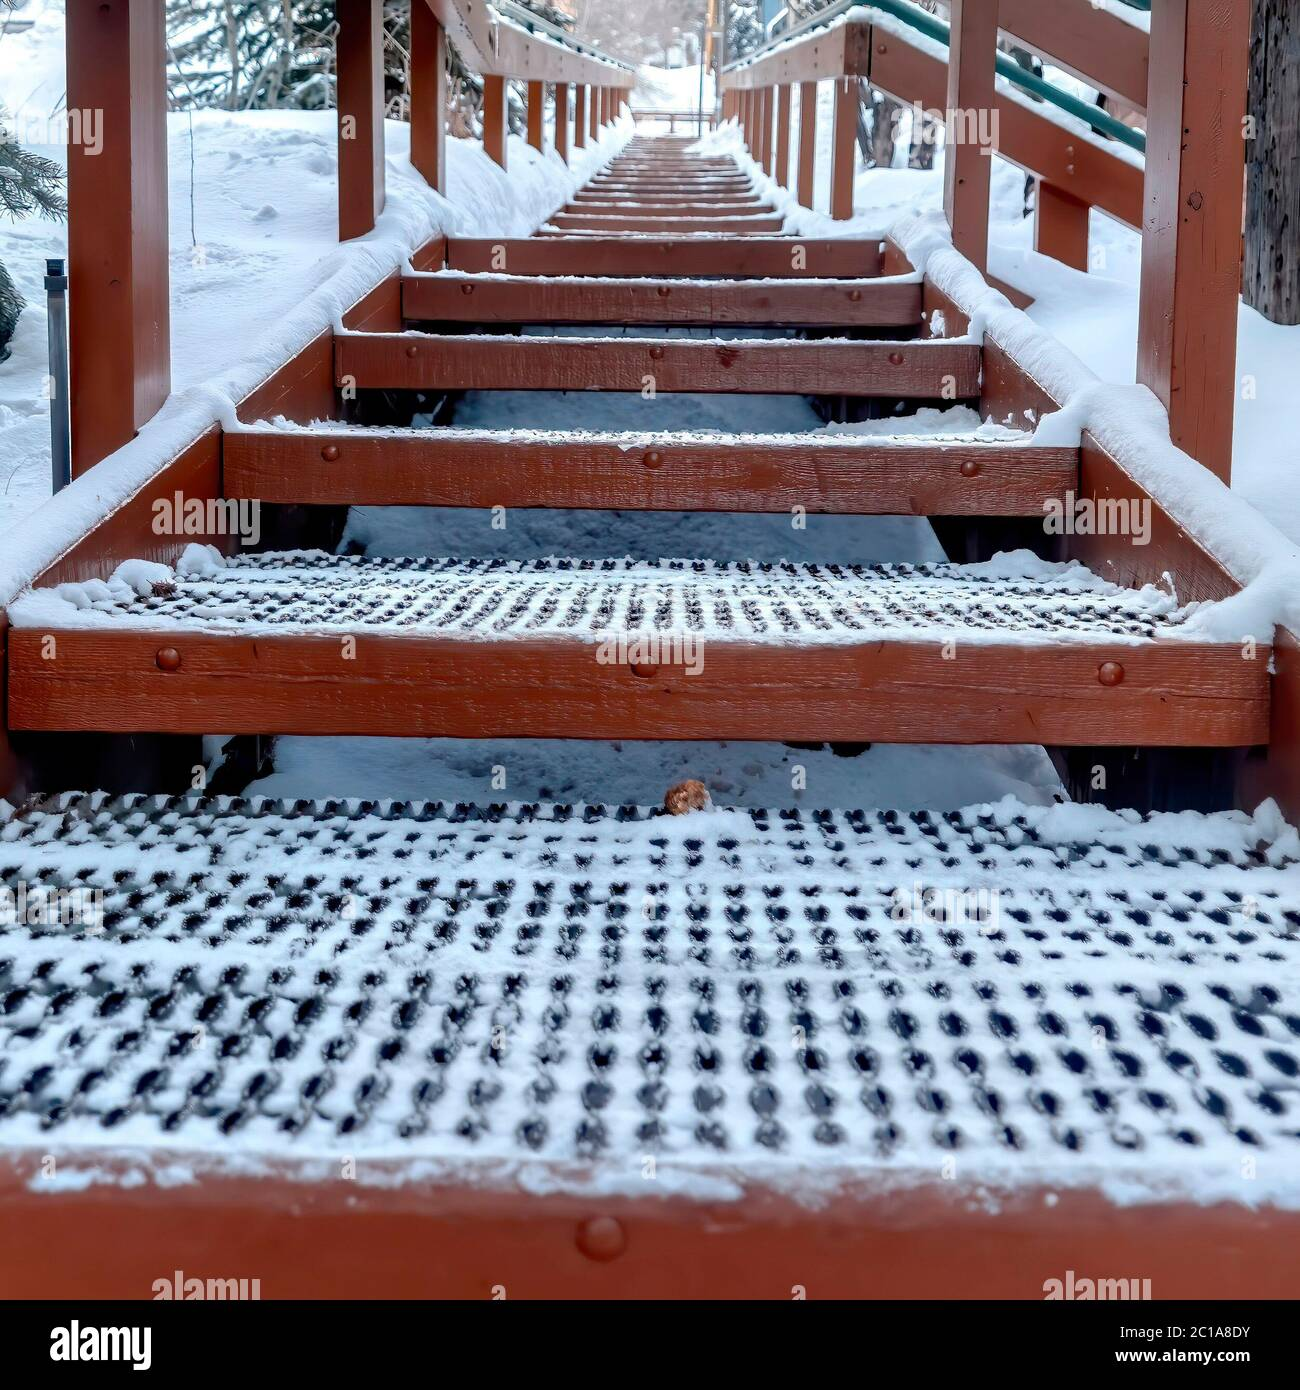 Square Focus on grate metal treads of outdoor stairs against snowy hill in winter Stock Photo